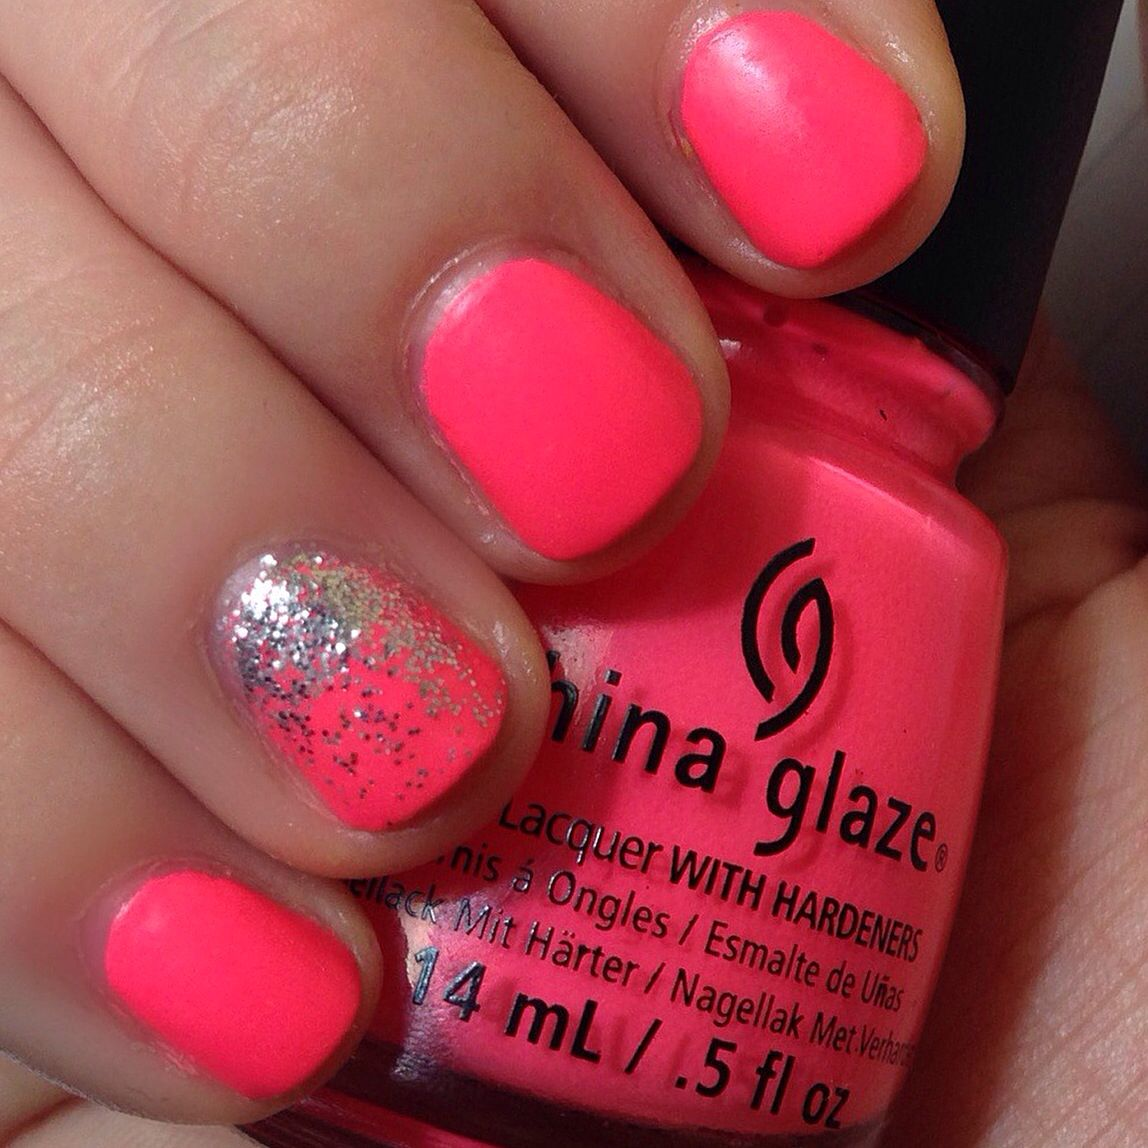 Bright Pink Nail Polish Colors: Neon Pink Nails And A Glitter Gradient. China Glaze's